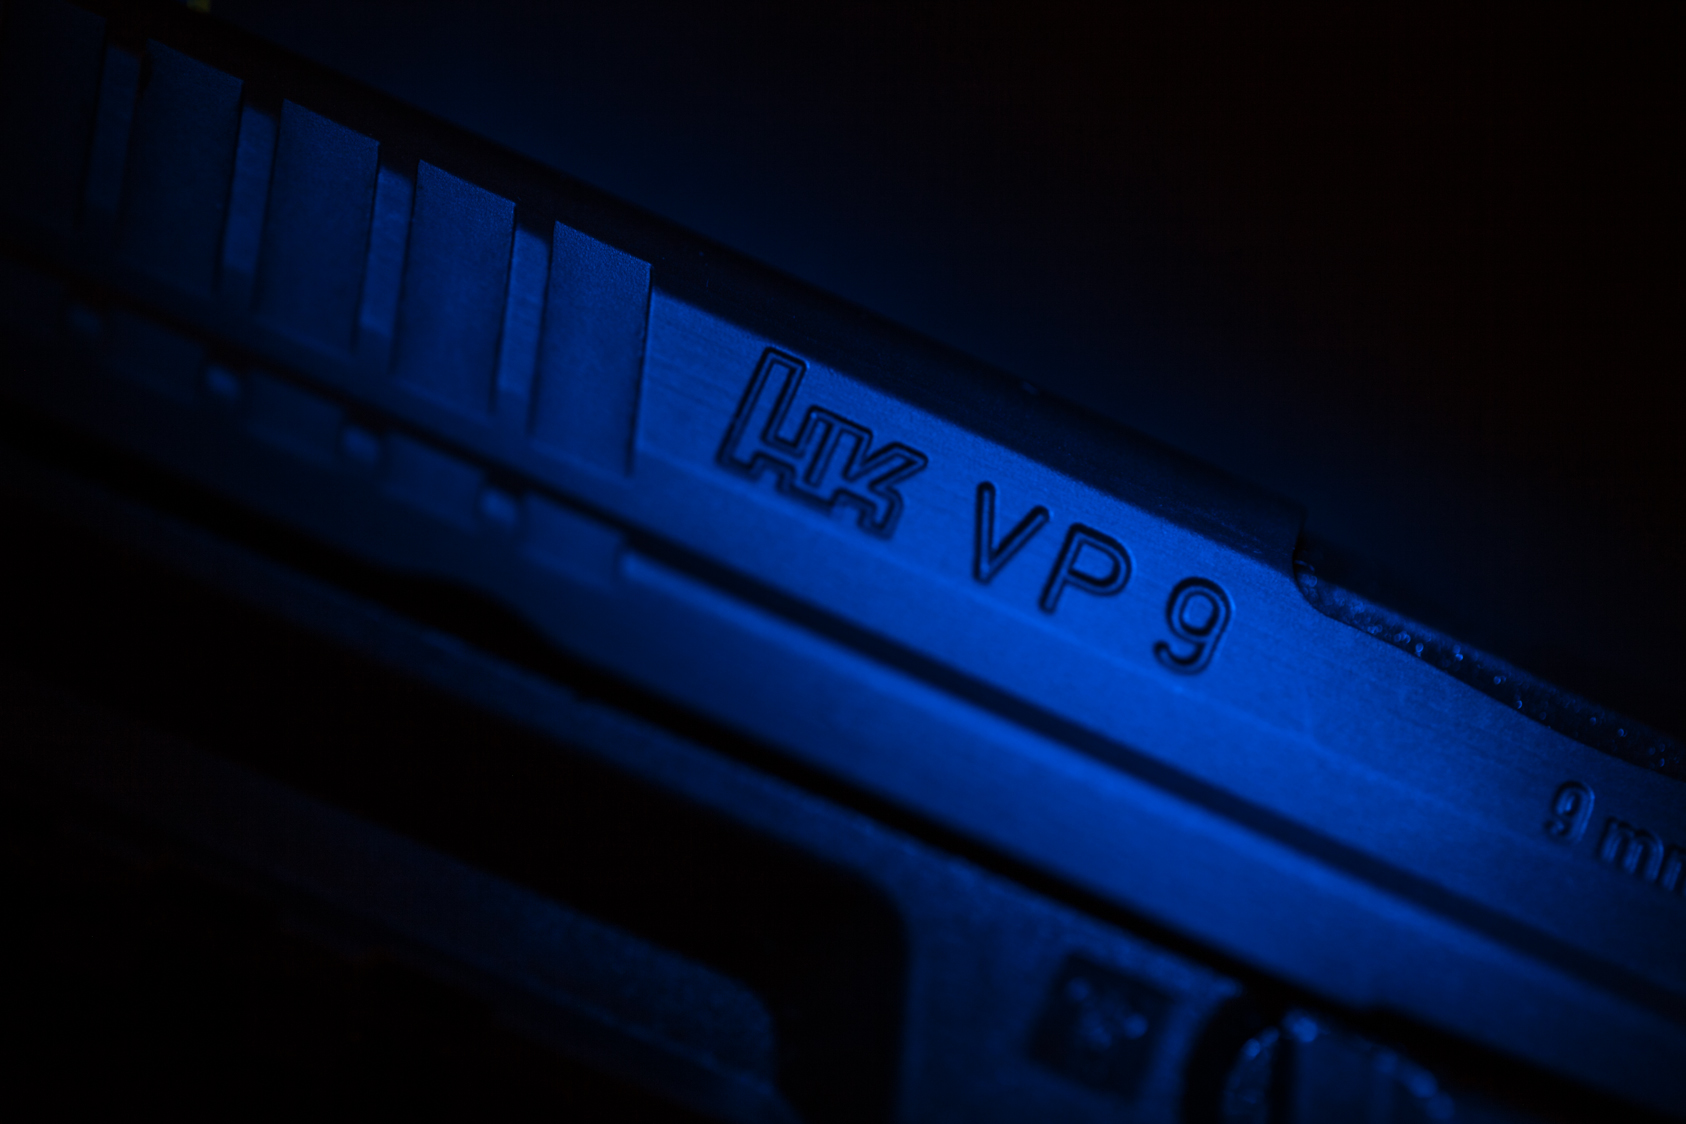 VP9 in blue